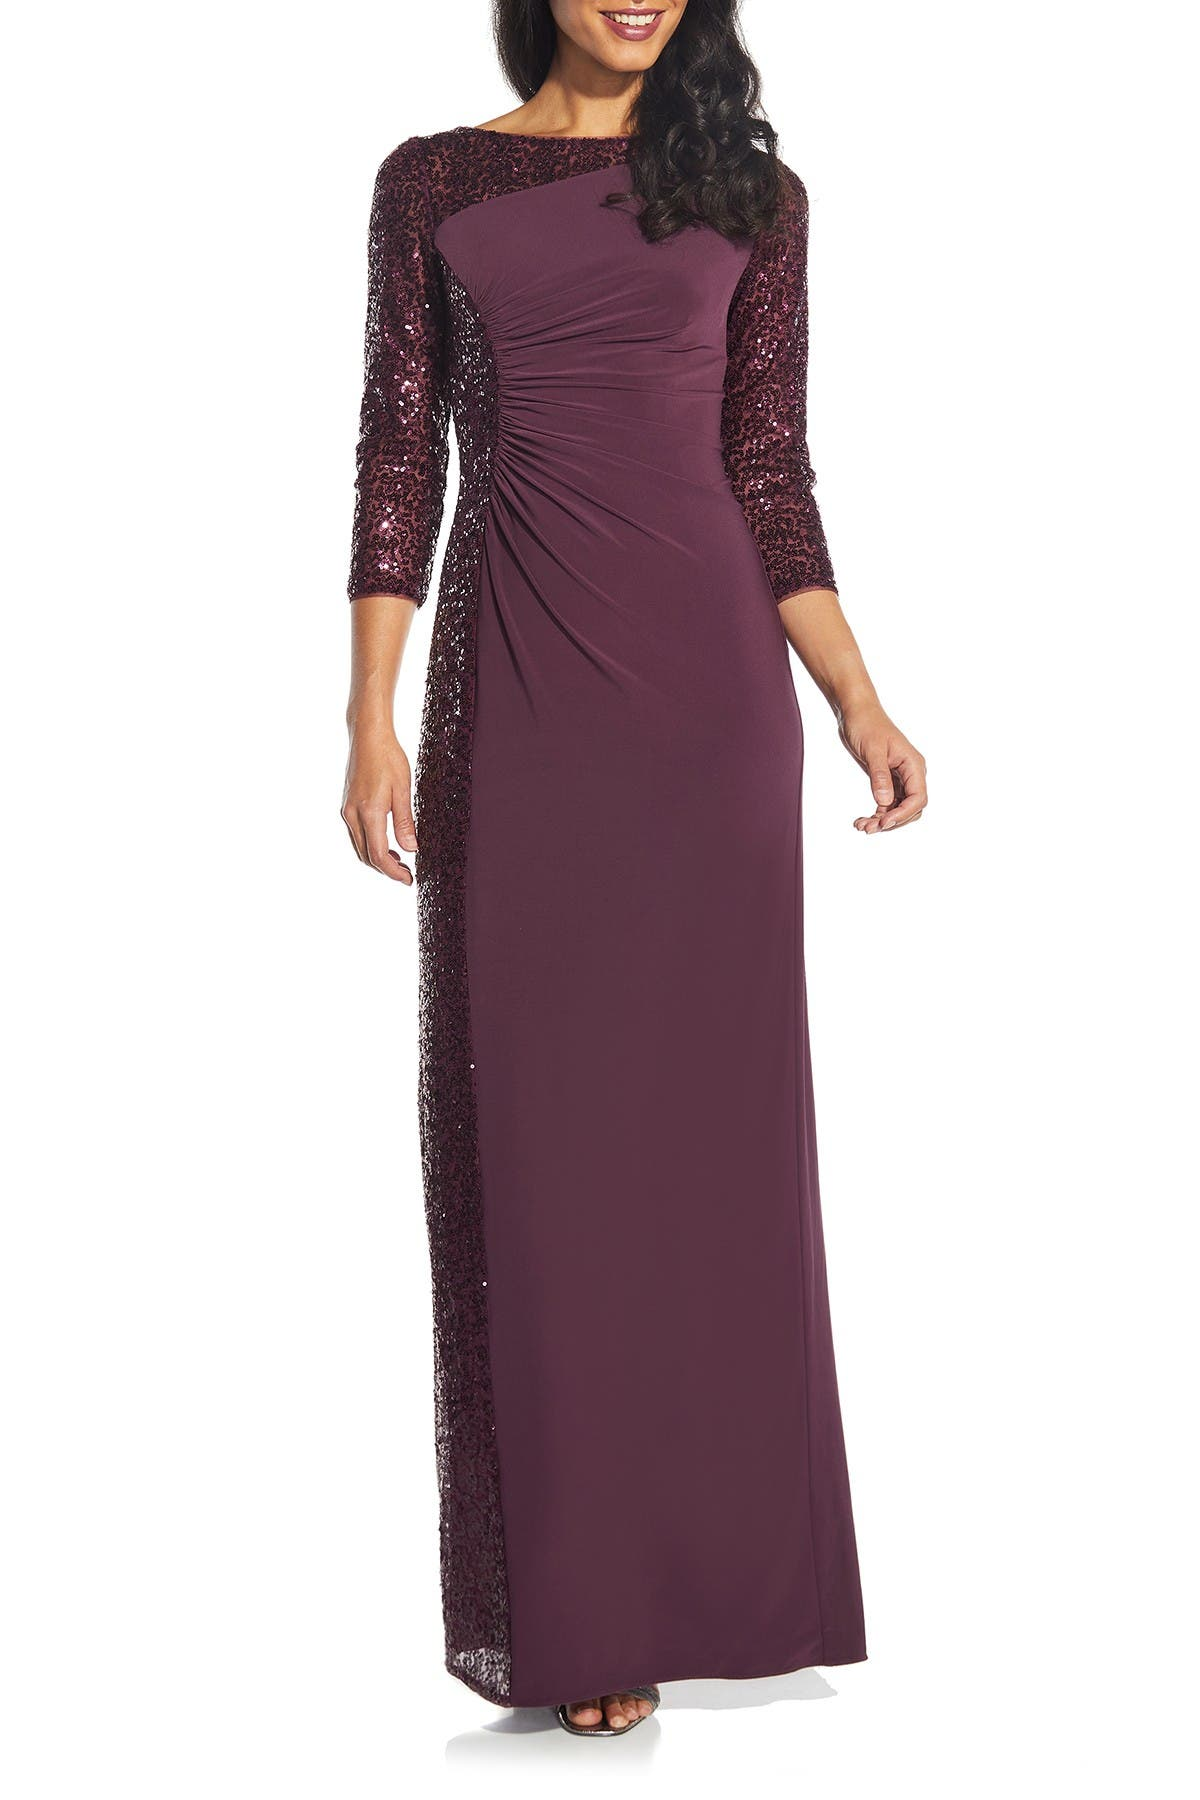 Image of Adrianna Papell Sequin Dress